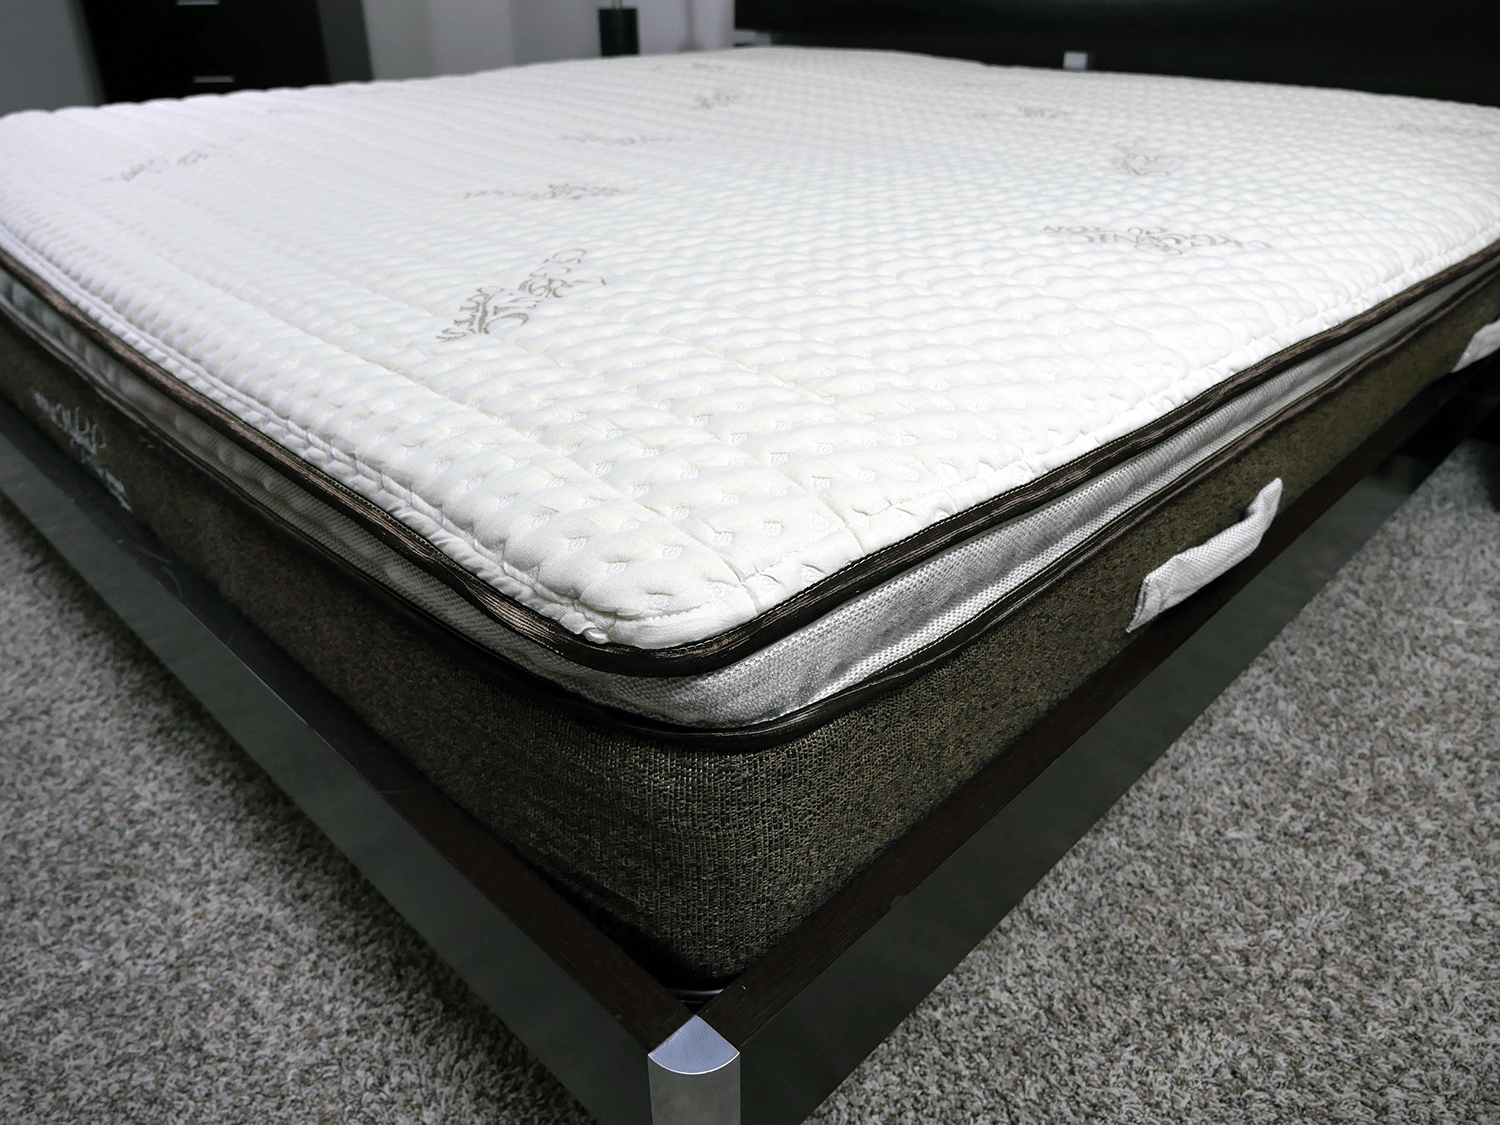 Close up shot of the Nest latex hybrid mattress cover